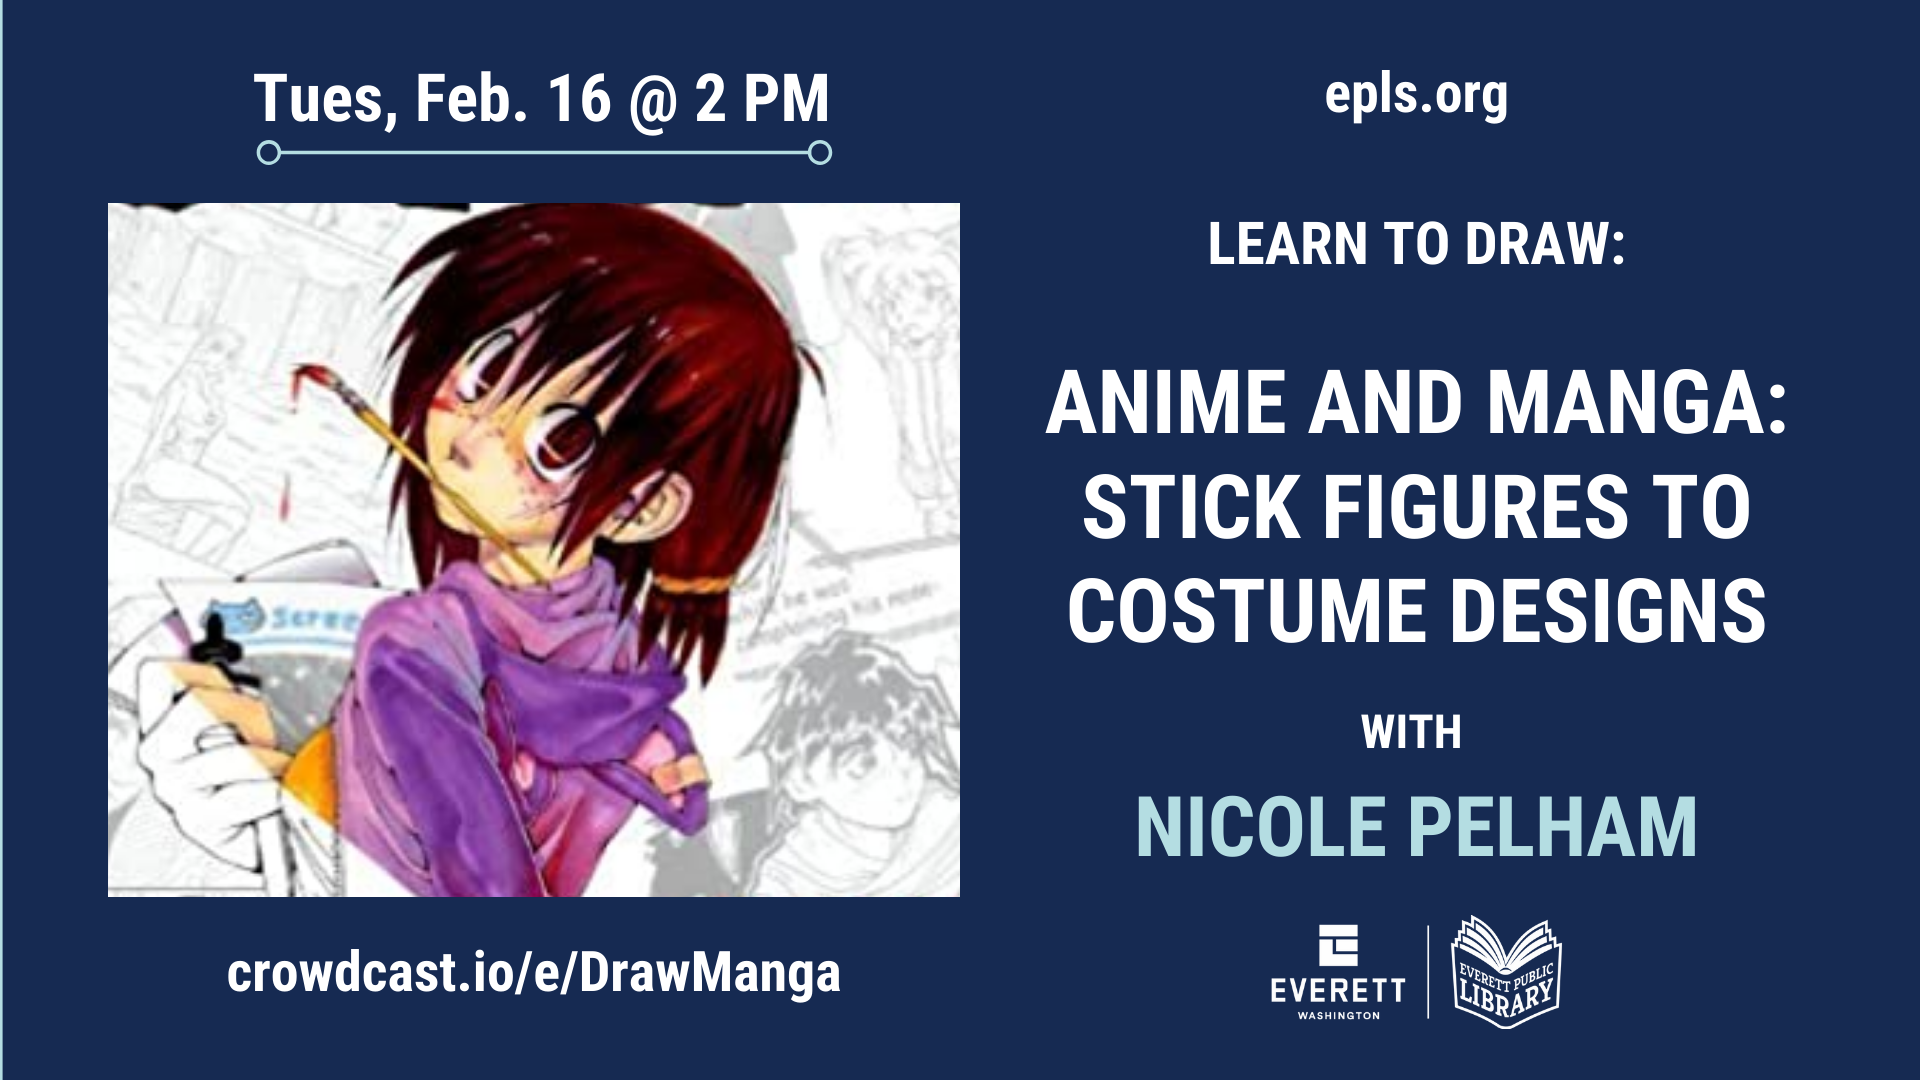 Image of the Learn to Draw Anime and Manga Characters flier for the event February 16 at 2pm.